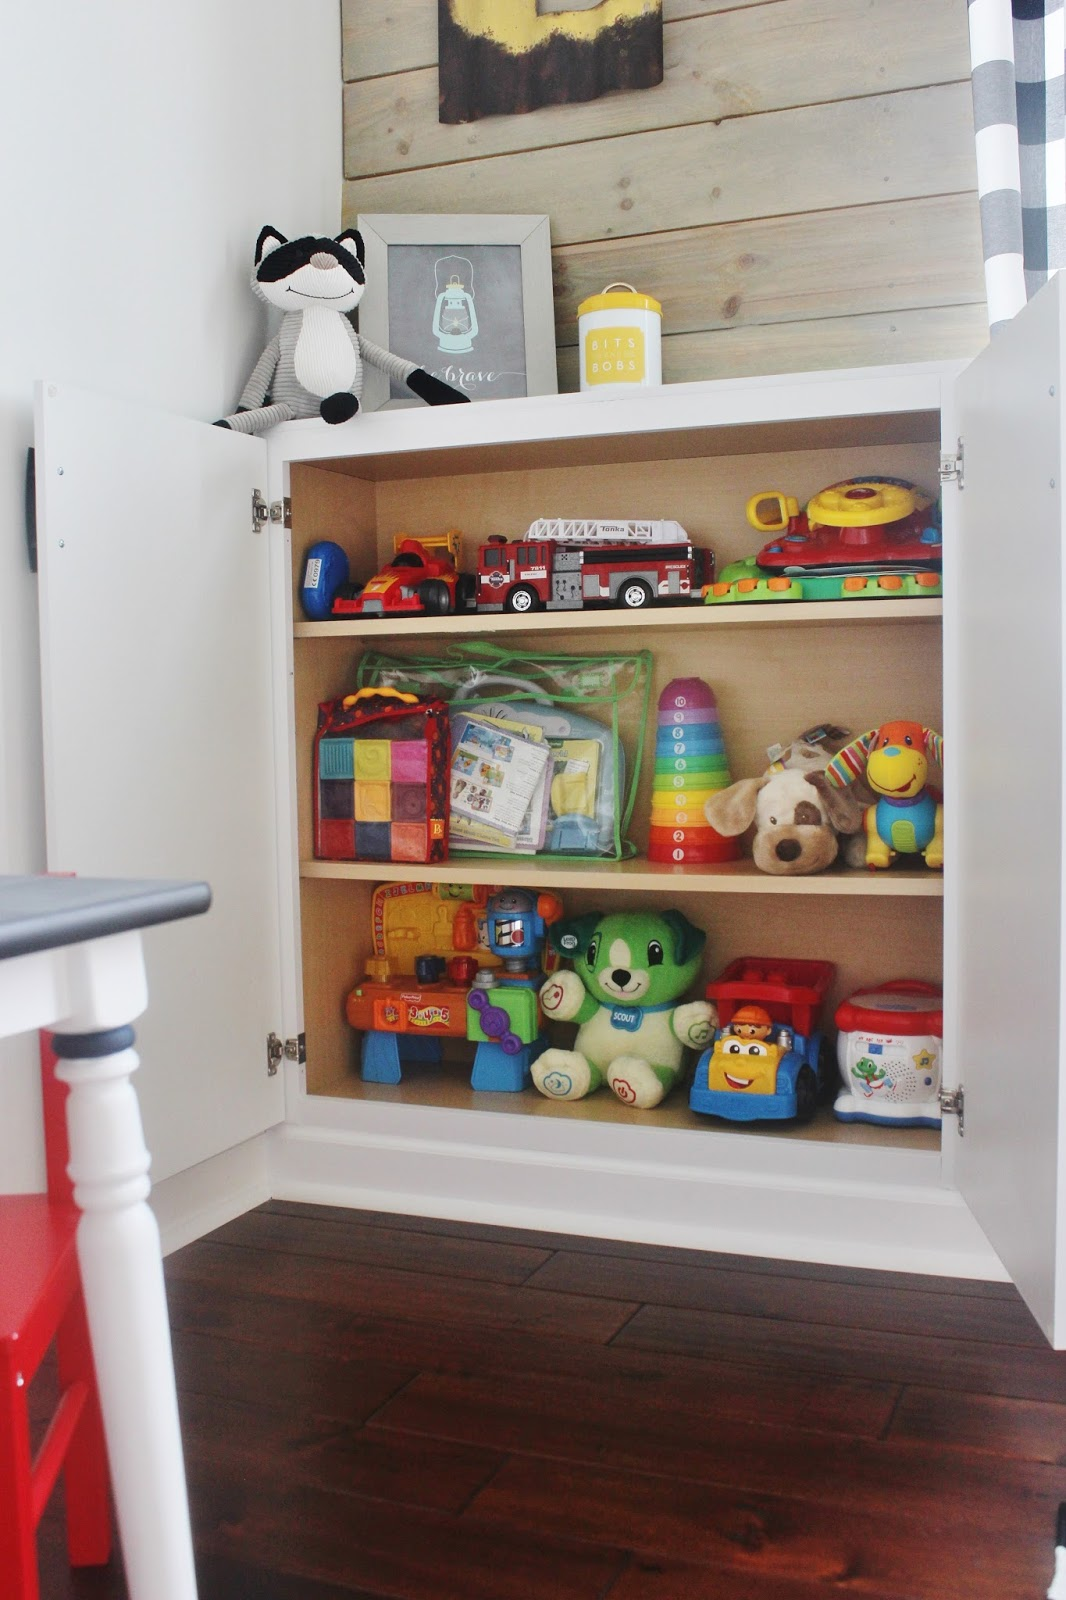 Design Playroom Storage remodelaholic playroom makeover with built in cabinets for storage remodeled by delightfully noted featured on remodelaholic